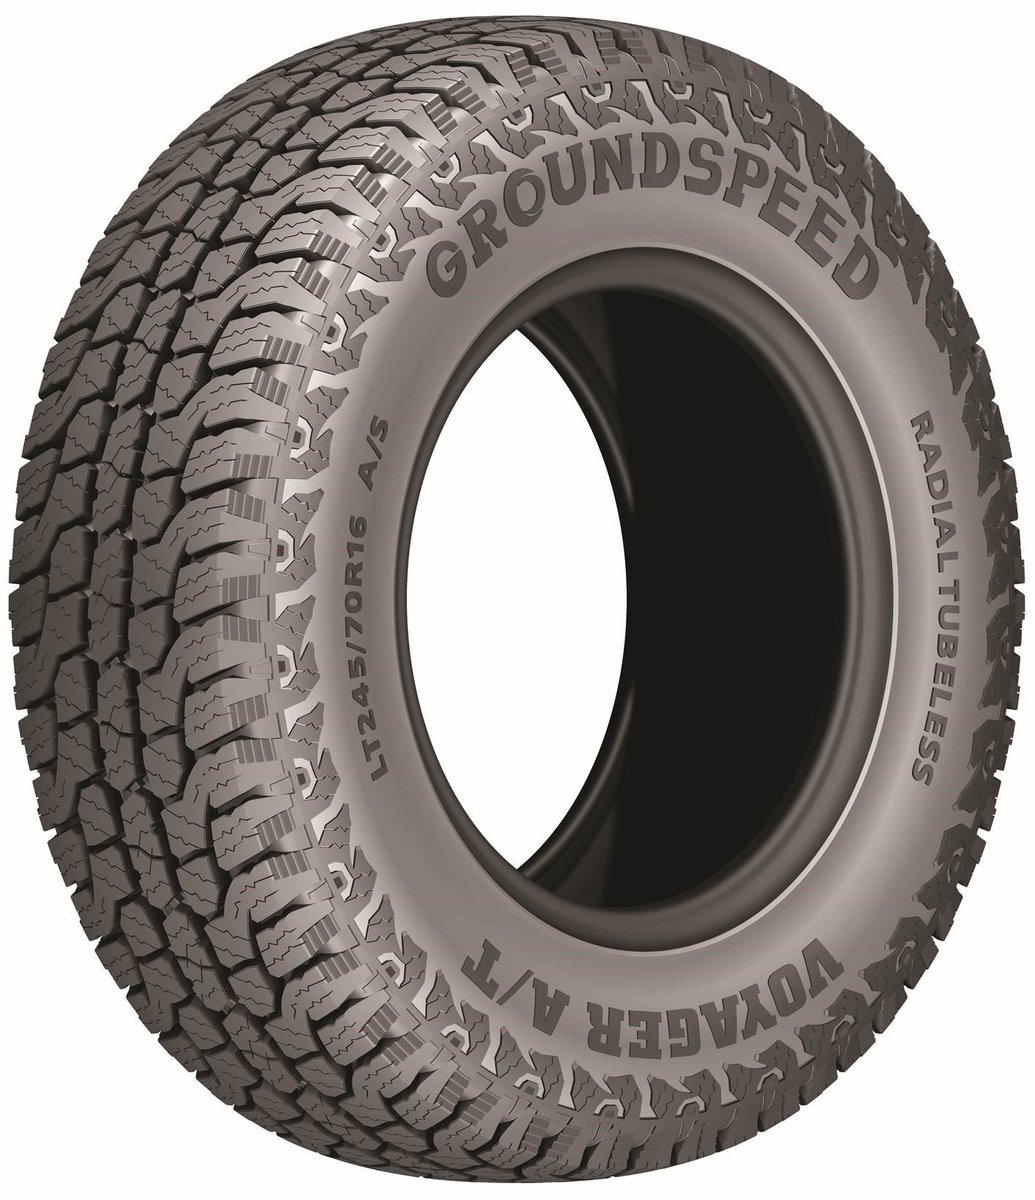 Sentury Tire Na On Twitter For Those Of You Who Love Off Roading